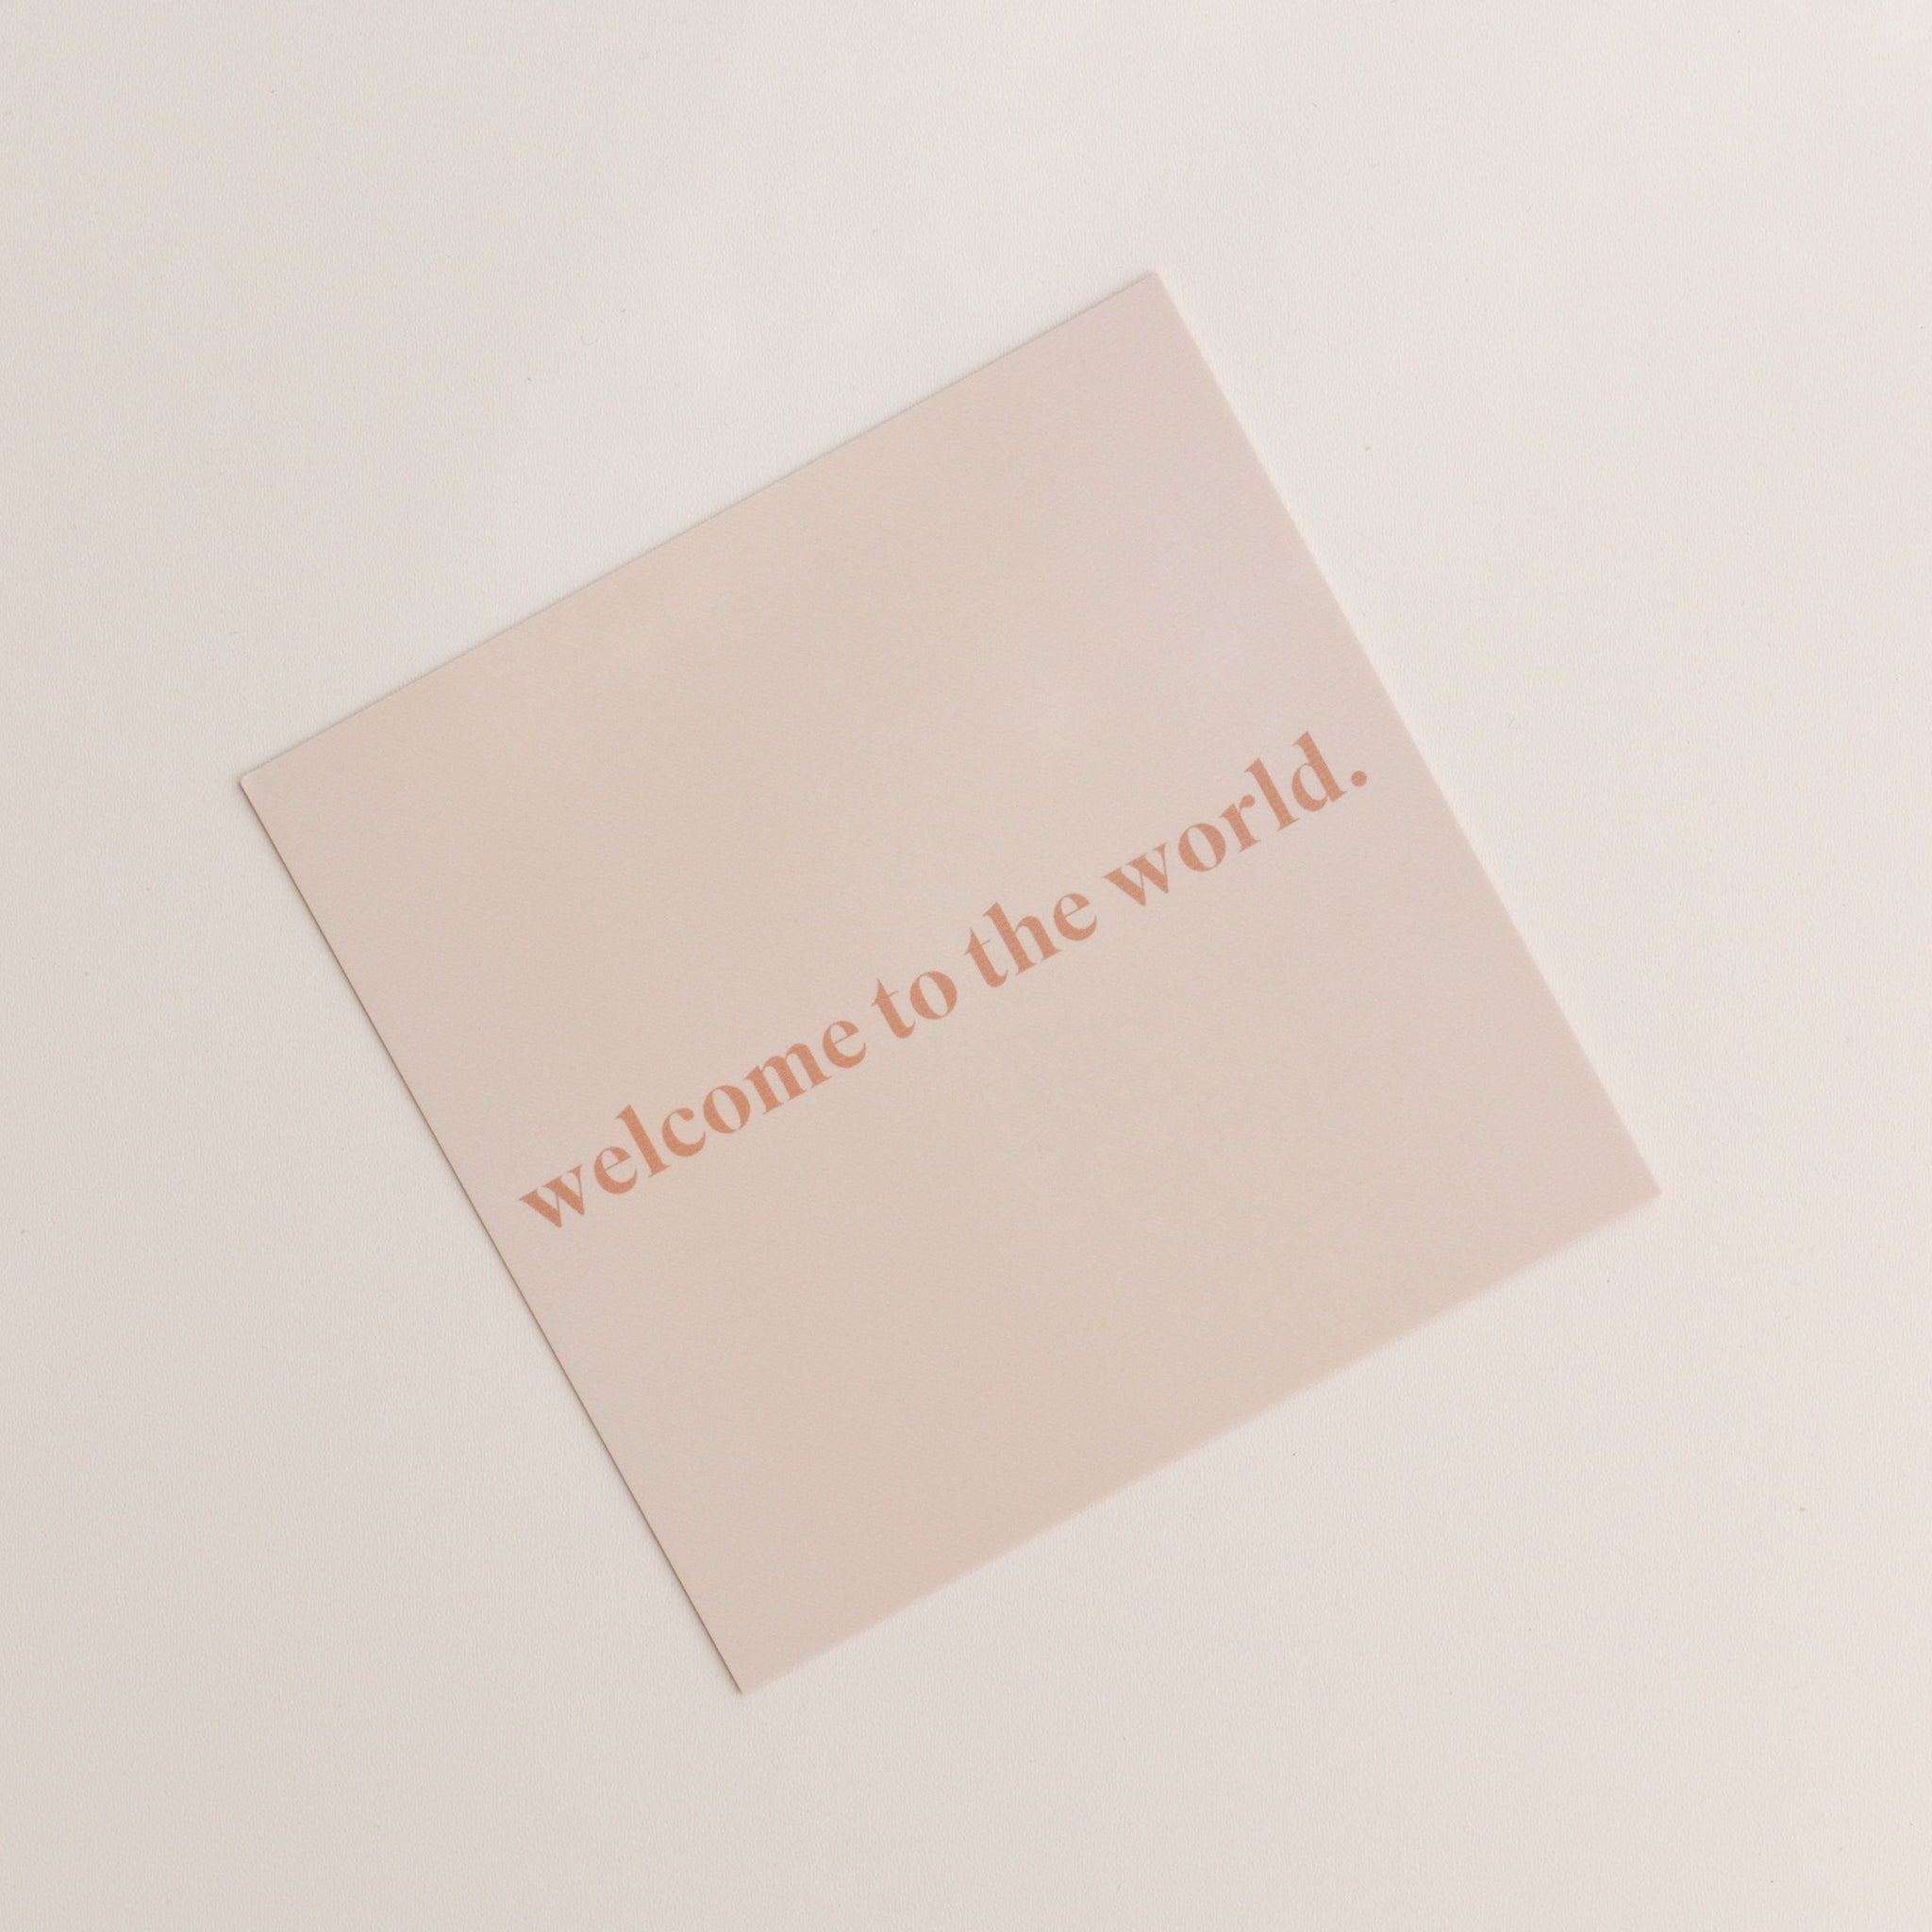 welcome to the world | gift card